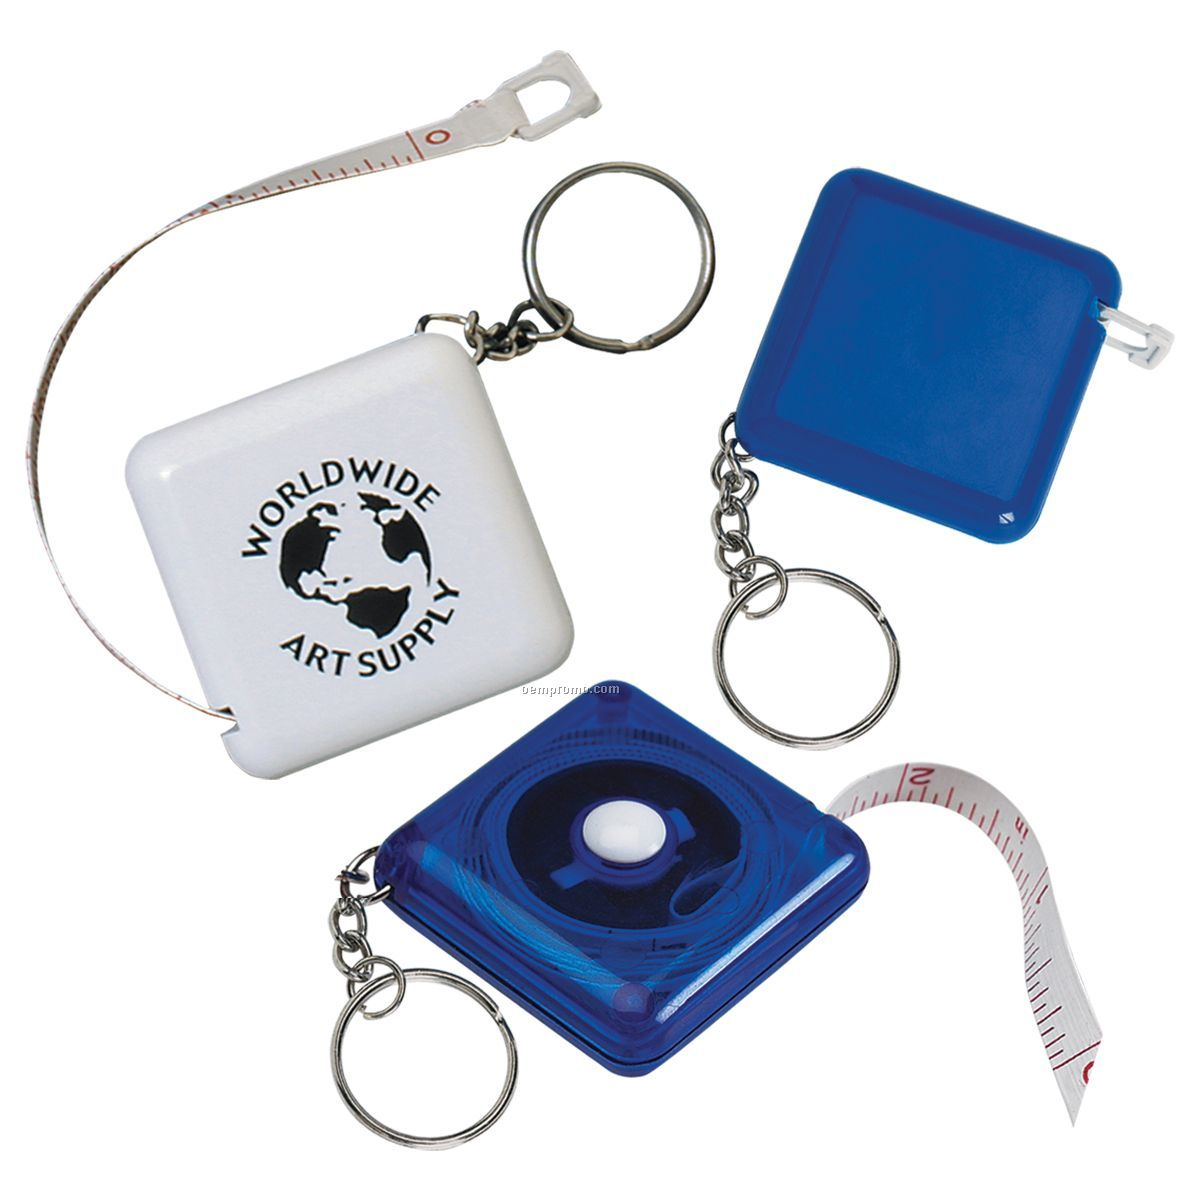 Tape-a-matic Measuring Tape W/ Key Tag